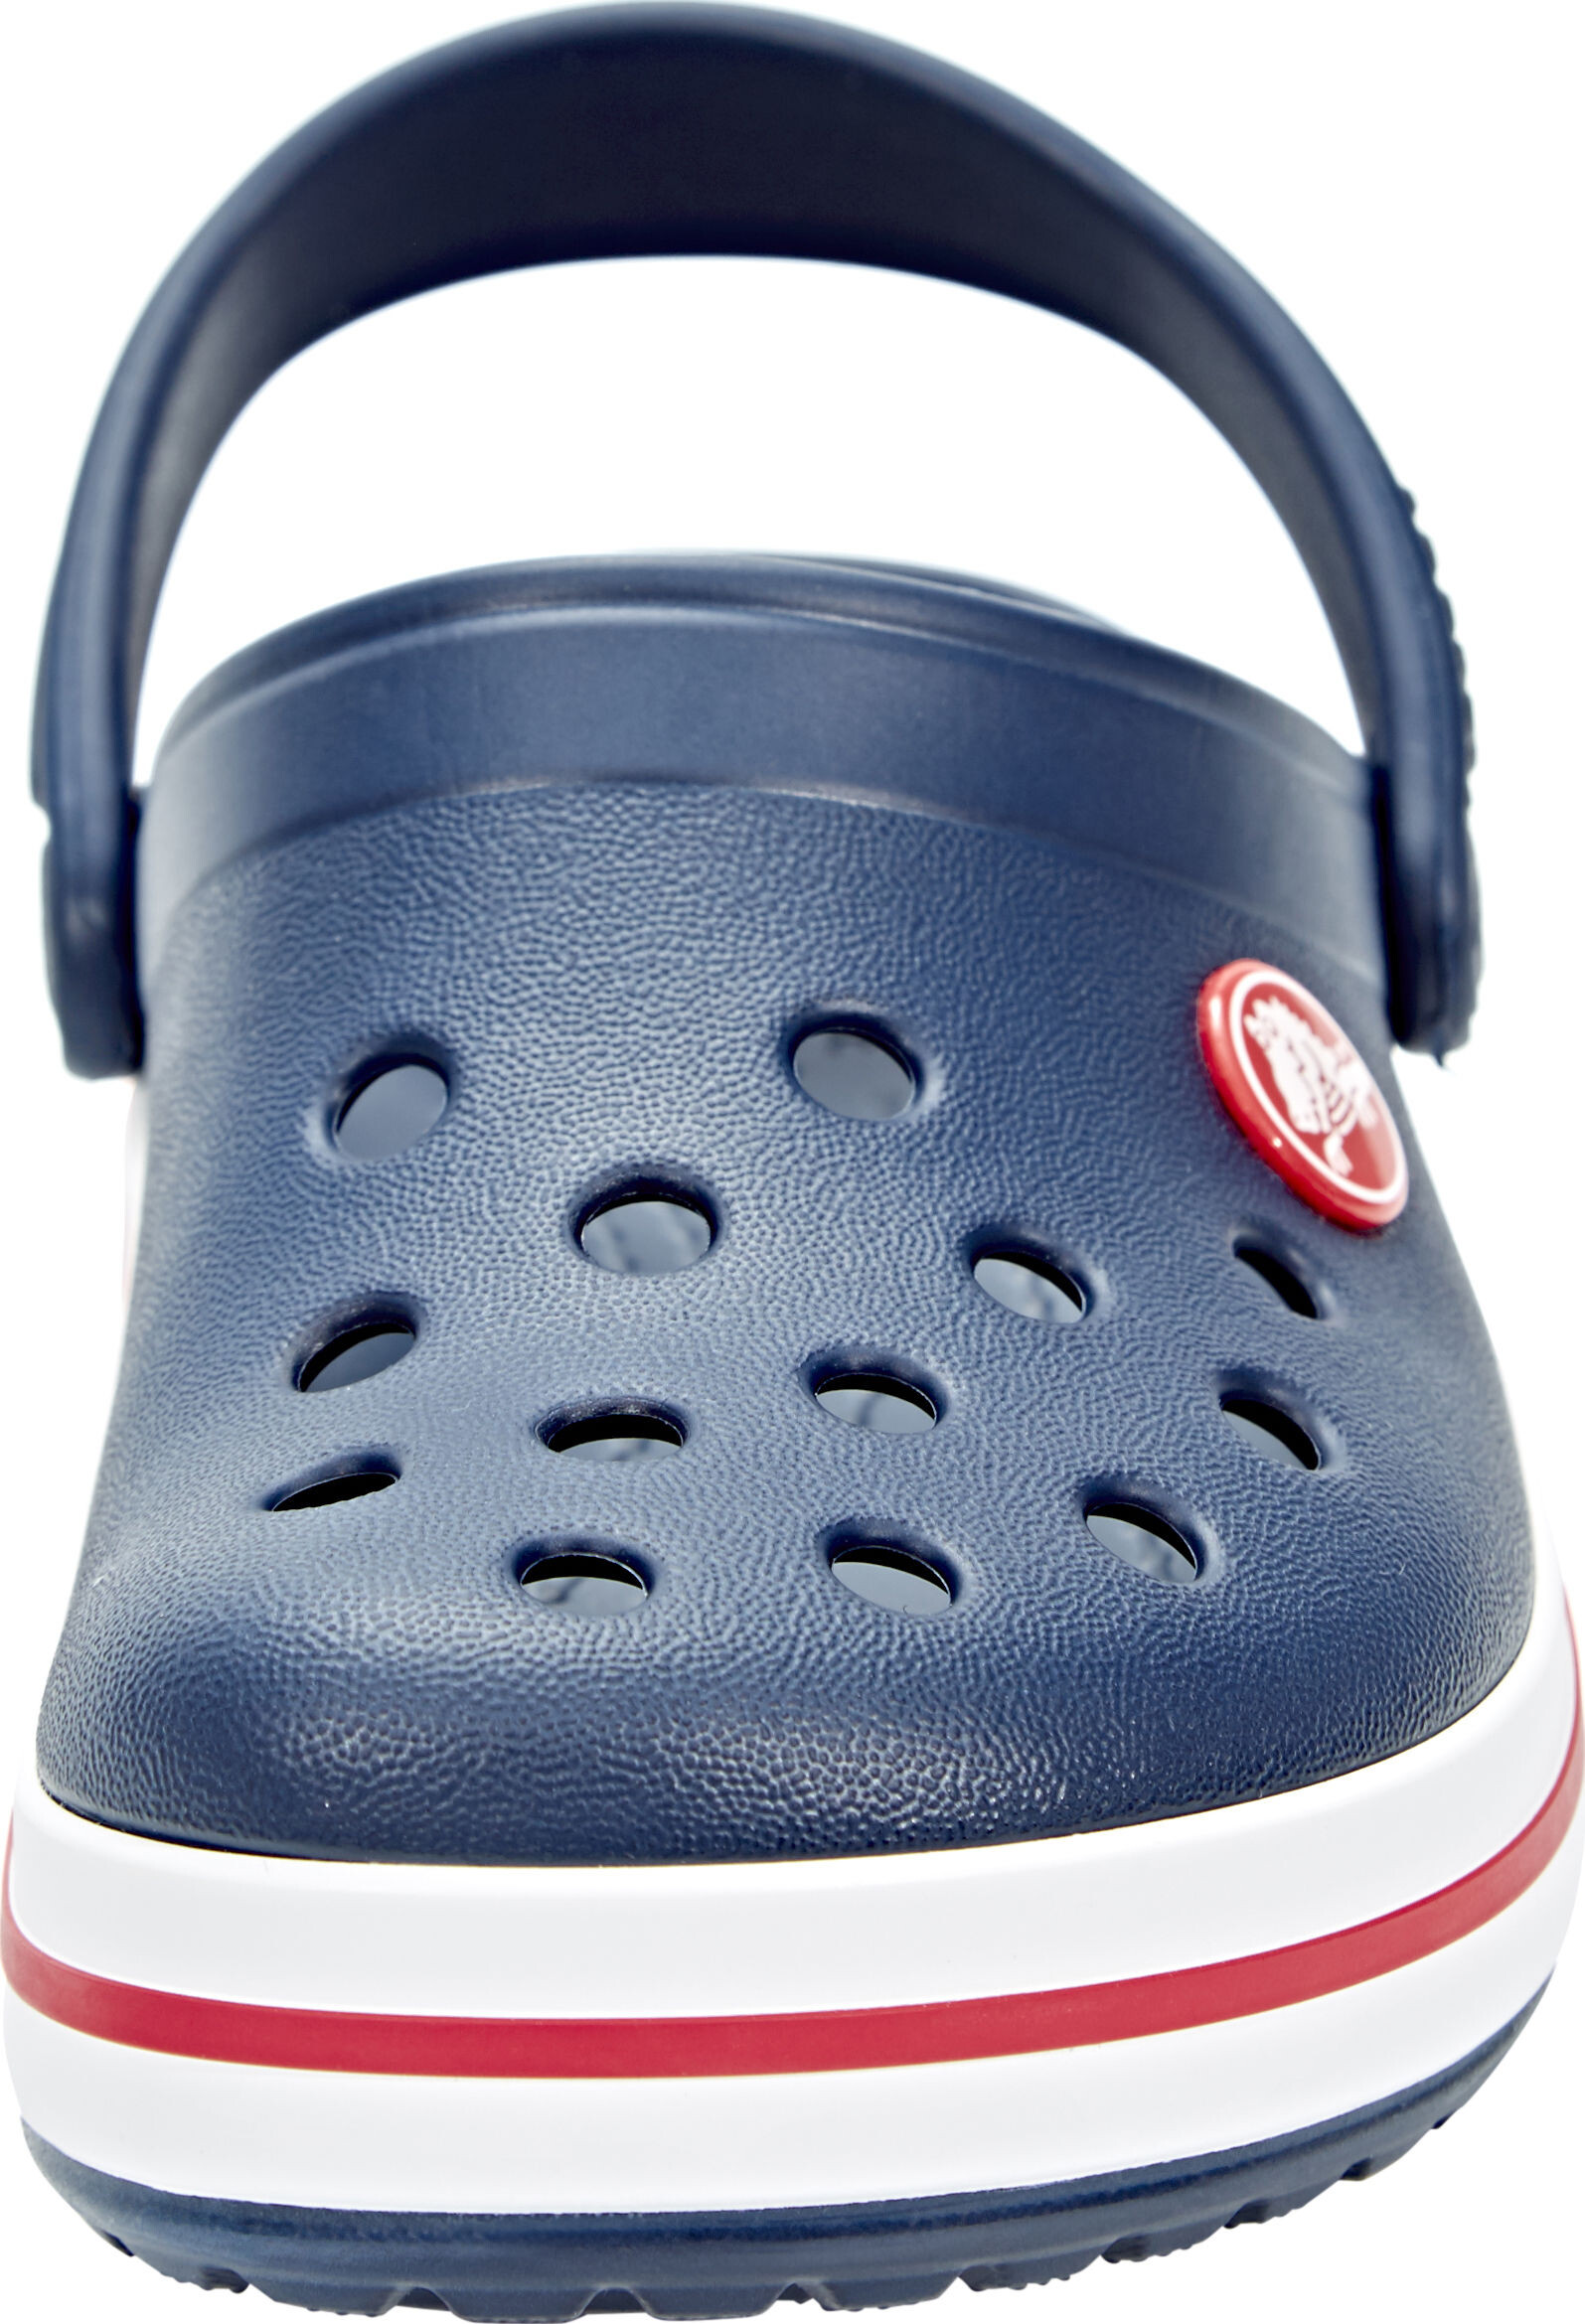 c94a407172 Crocs Crocband Clogs Kids navy red at Addnature.co.uk